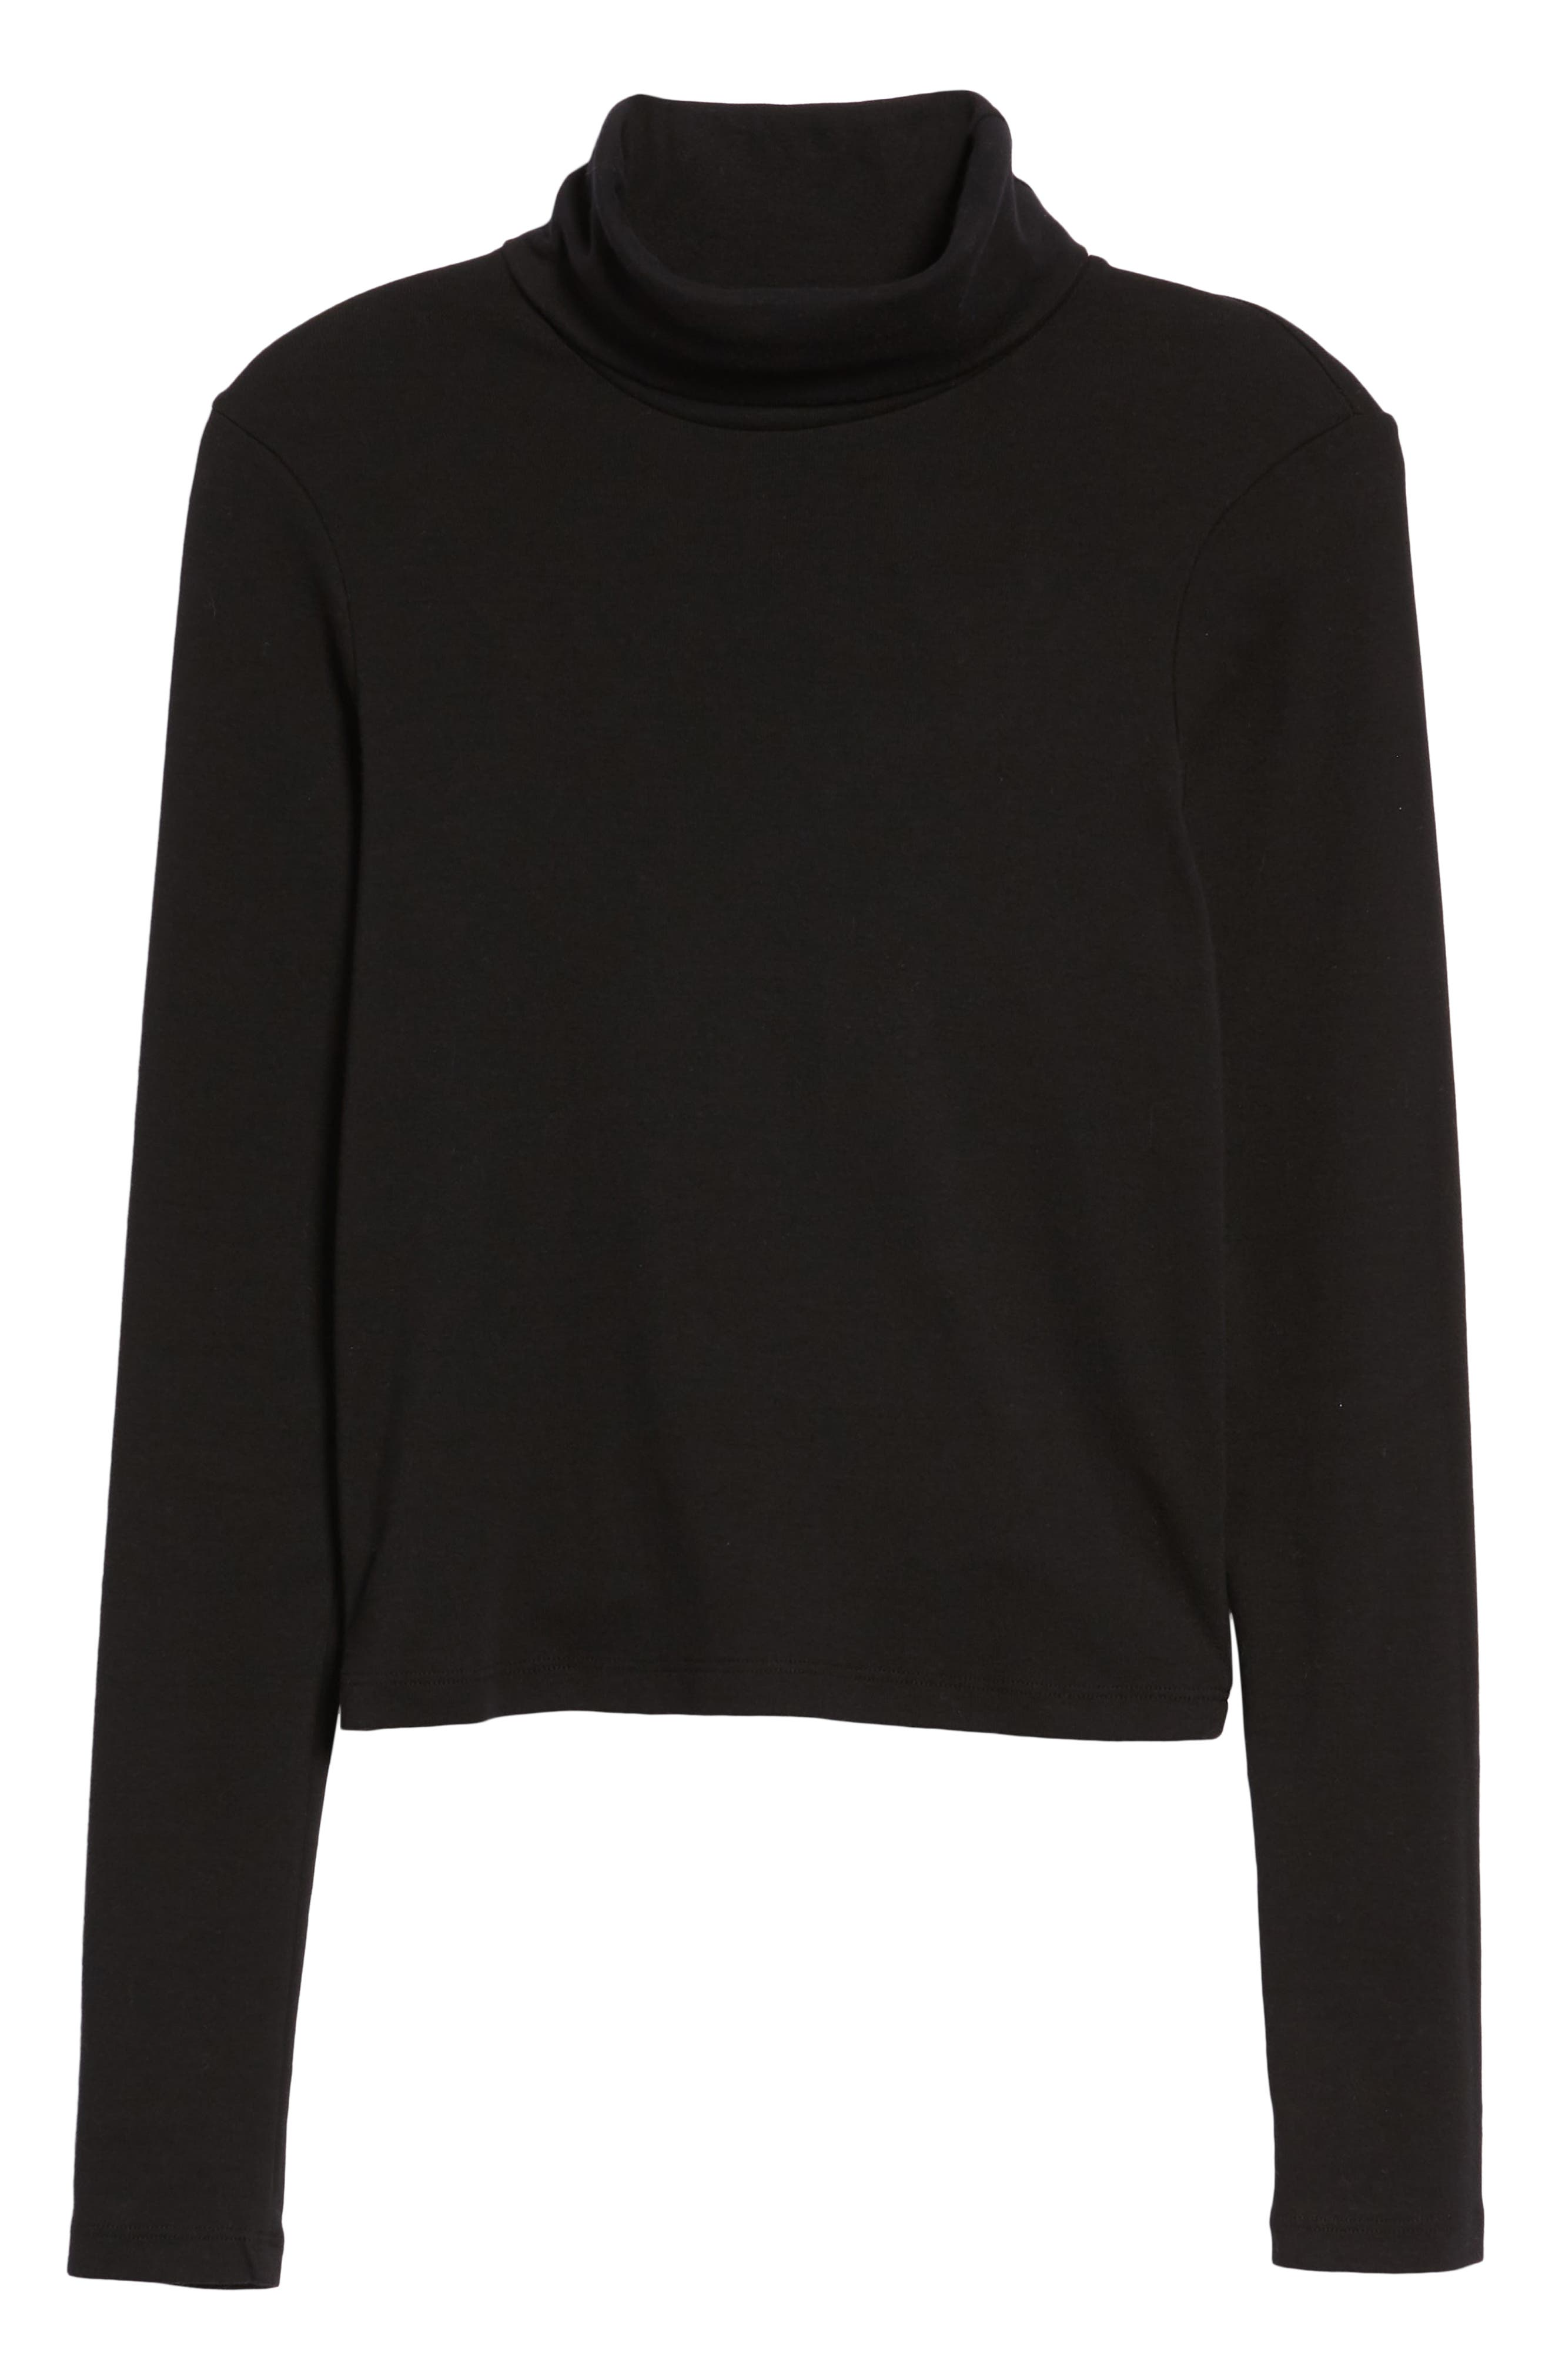 Turtleneck Stretch Cotton Crop Top,                             Alternate thumbnail 6, color,                             001